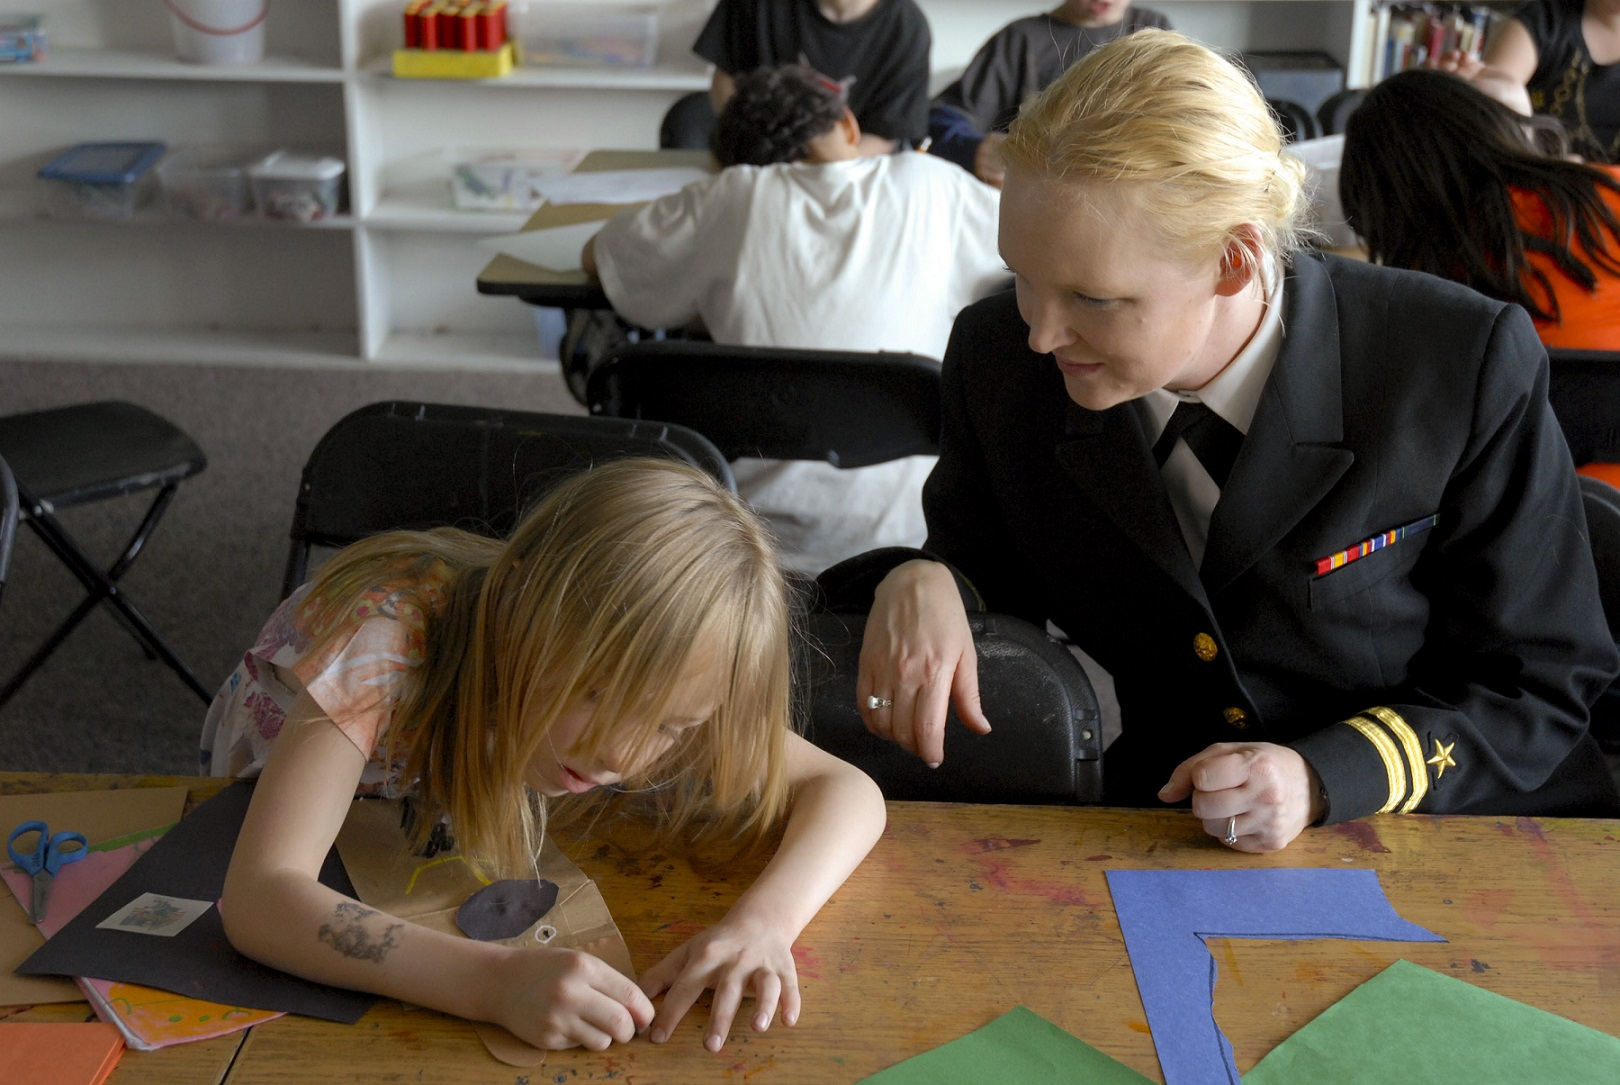 US_Navy_100512-N-0869H-119_Lt._Victoria_Tobin,_assigned_to_the_Navy_Office_of_Community_Outreach,_watches_a_member_of_the_Boys_and_Girls_Club_of_Spokane_County_during_a_Spokane_Navy_Week_event.jpg